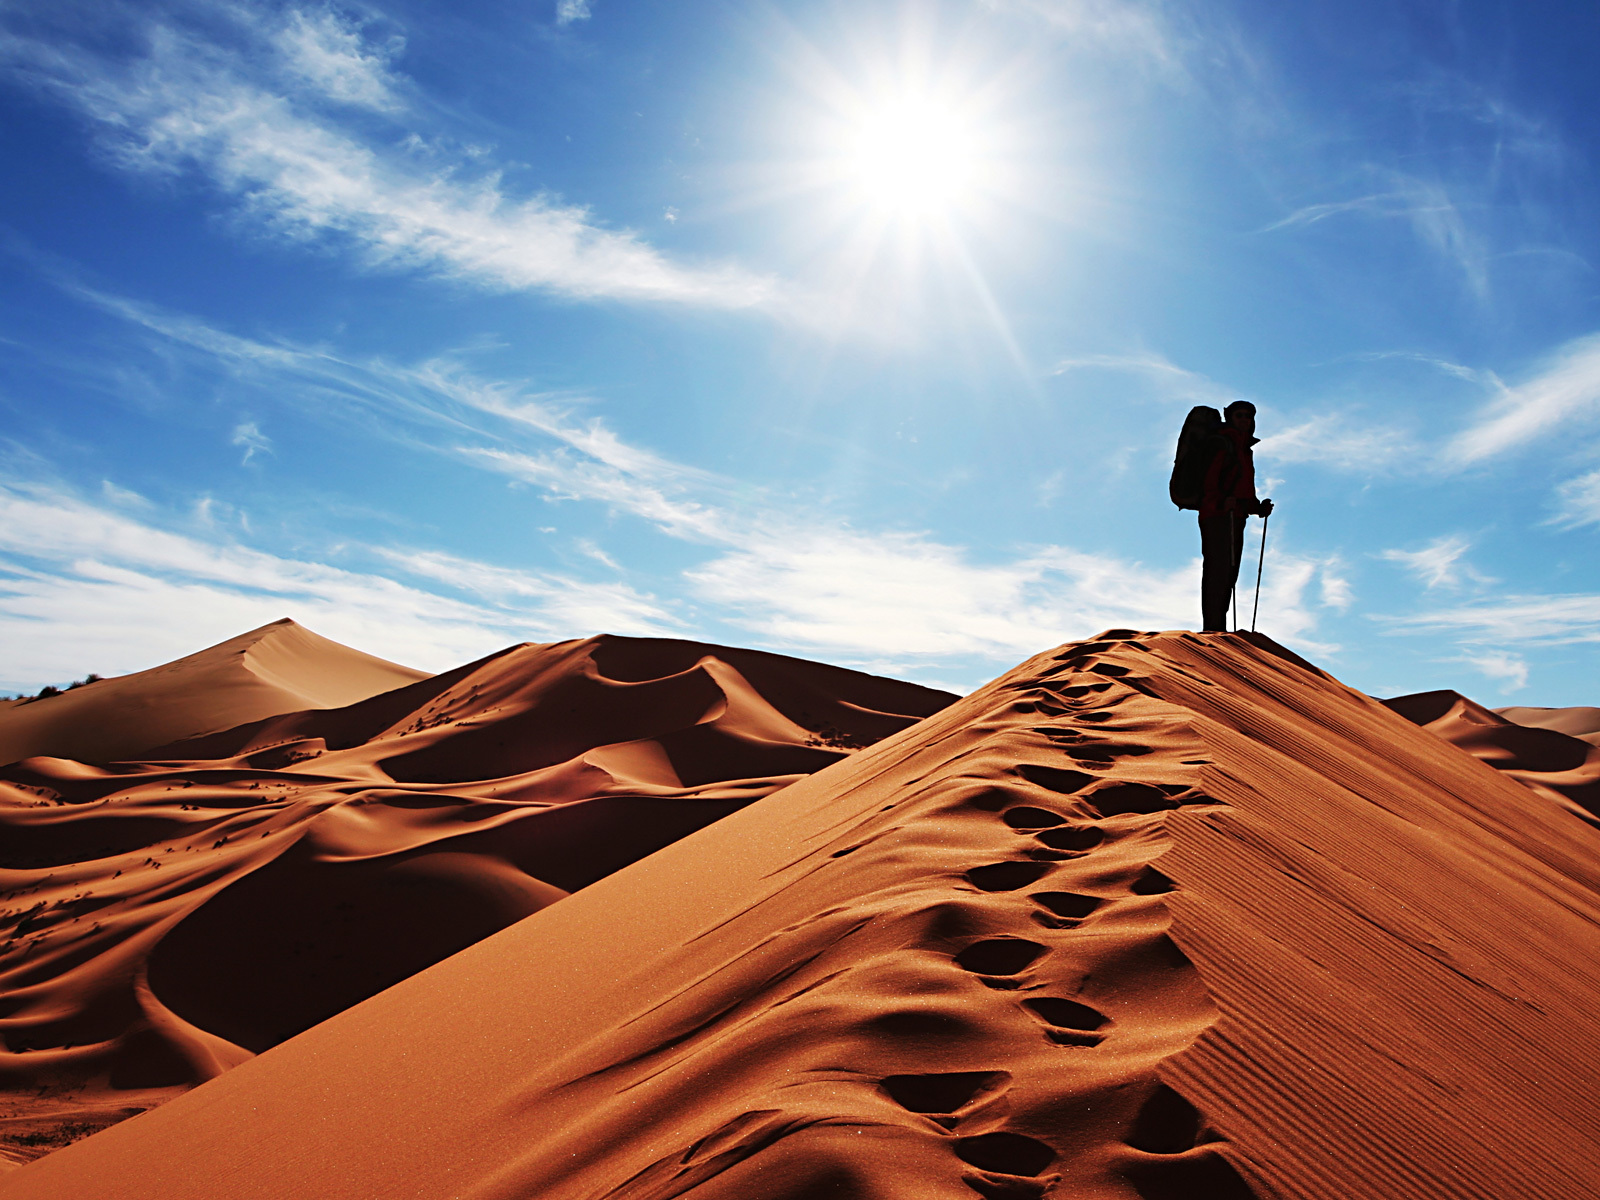 21119 download wallpaper Landscape, People, Sand, Desert screensavers and pictures for free